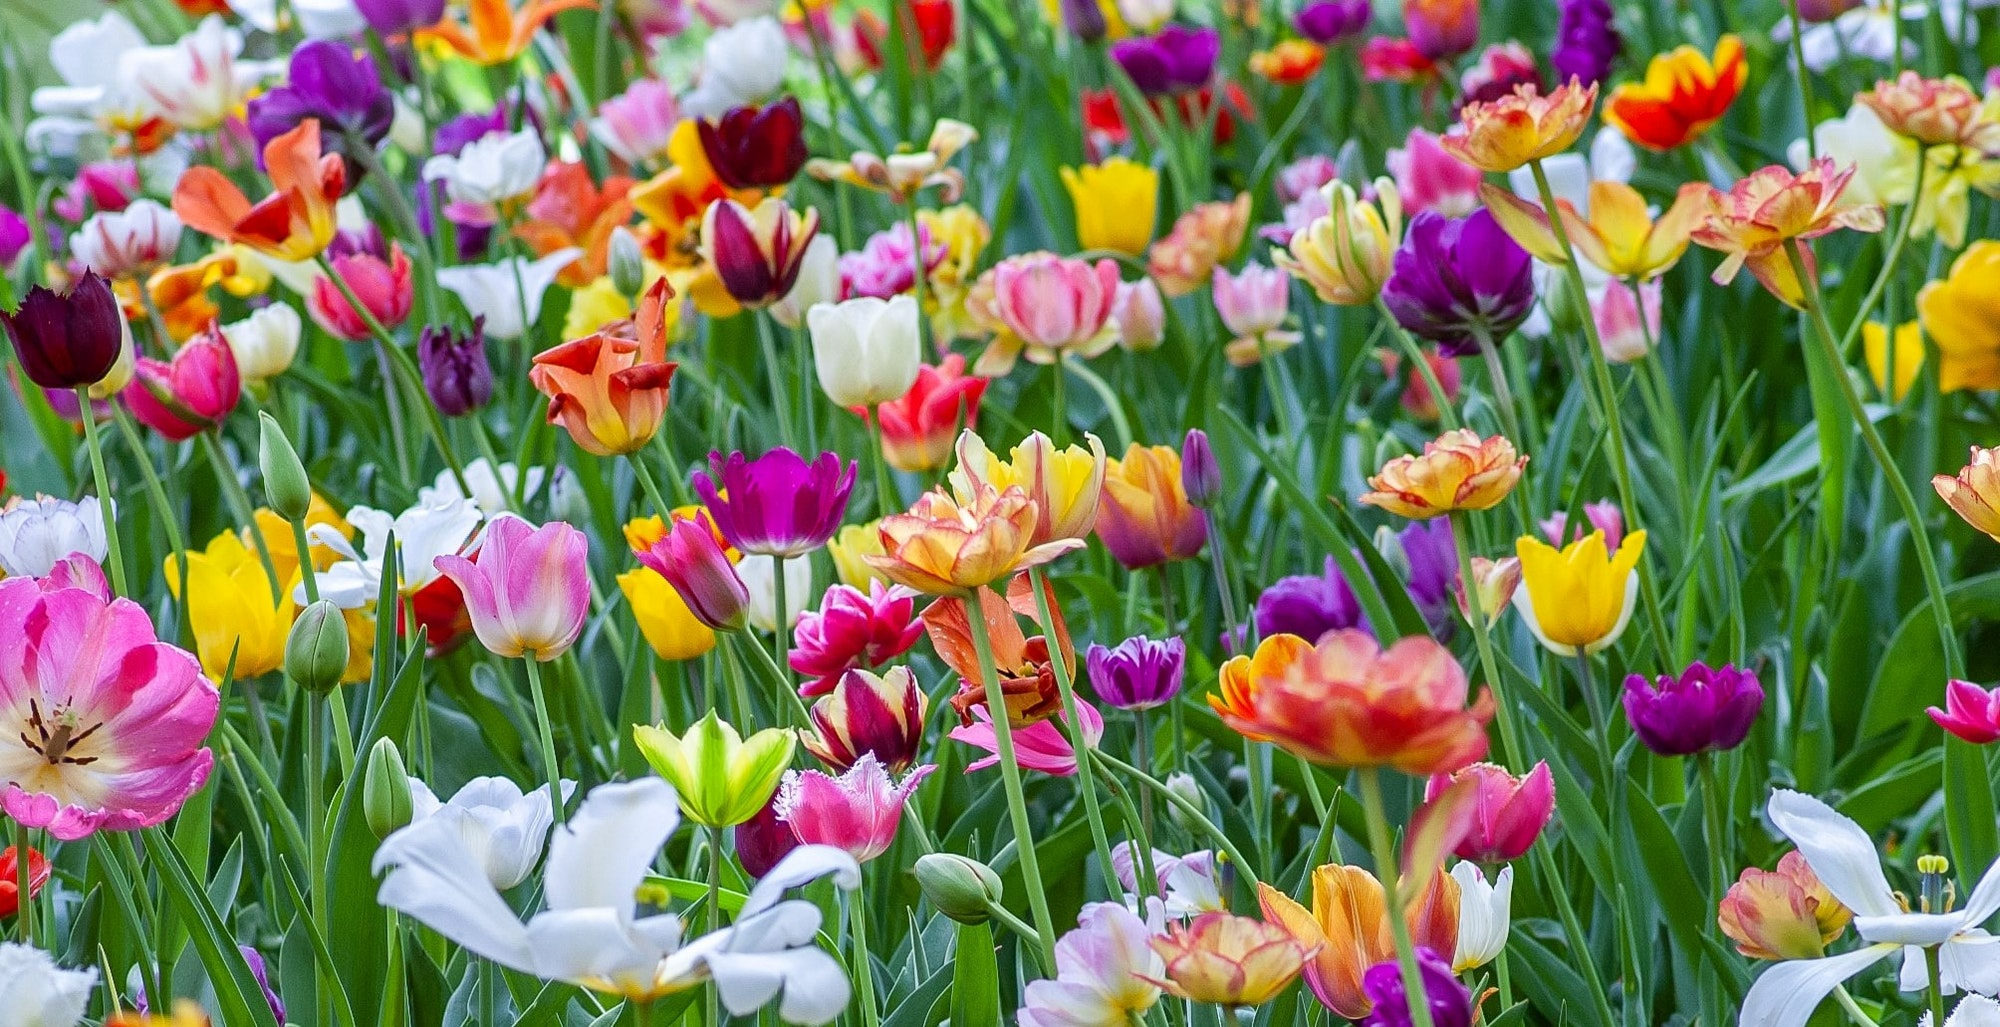 May contain: plant, flower, blossom, and tulip